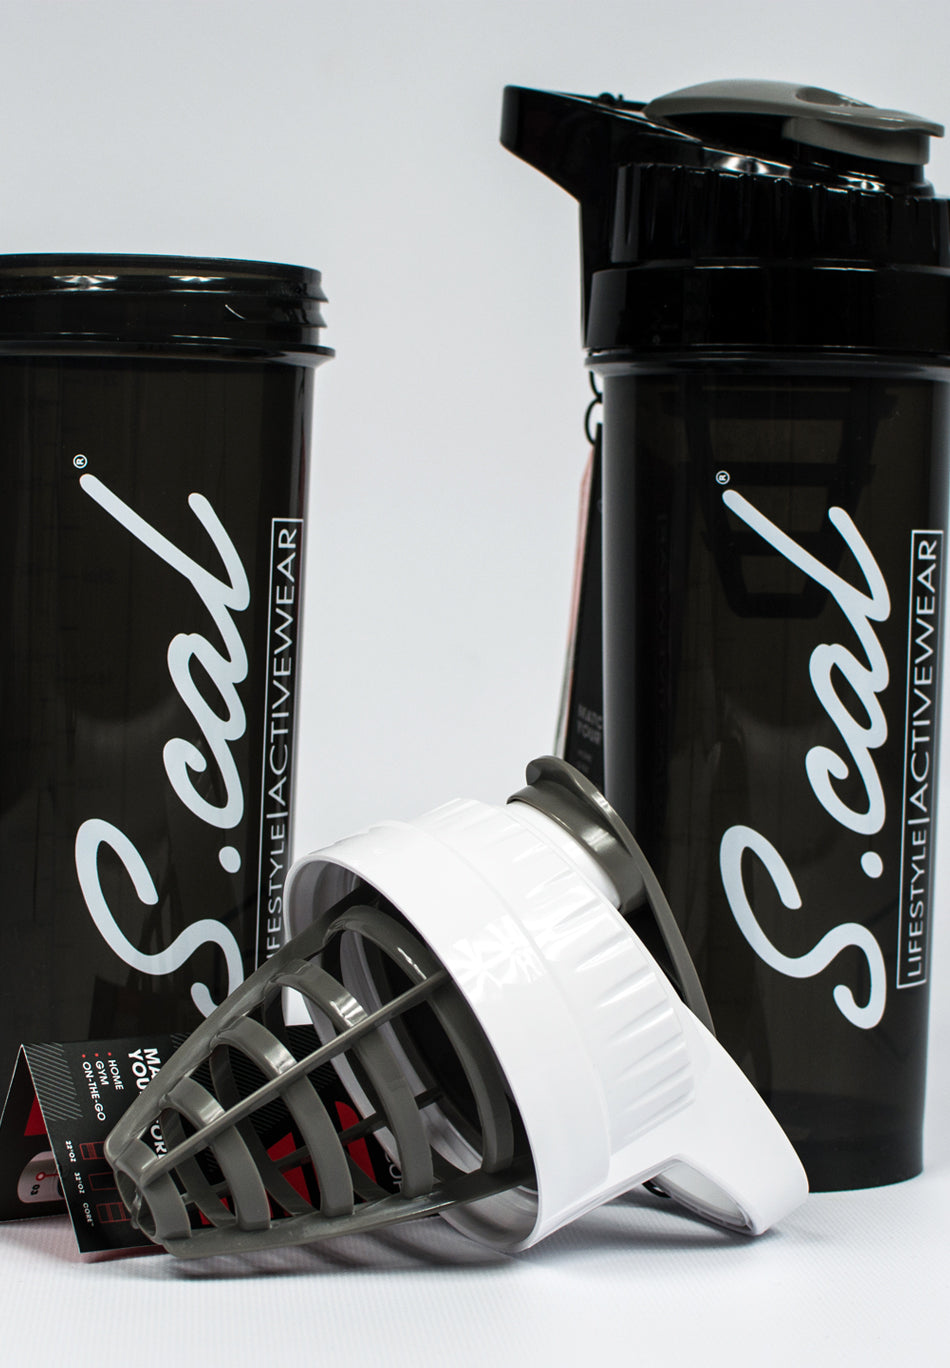 Scal - Shaker Cup 32oz - Black - Scal Clothing